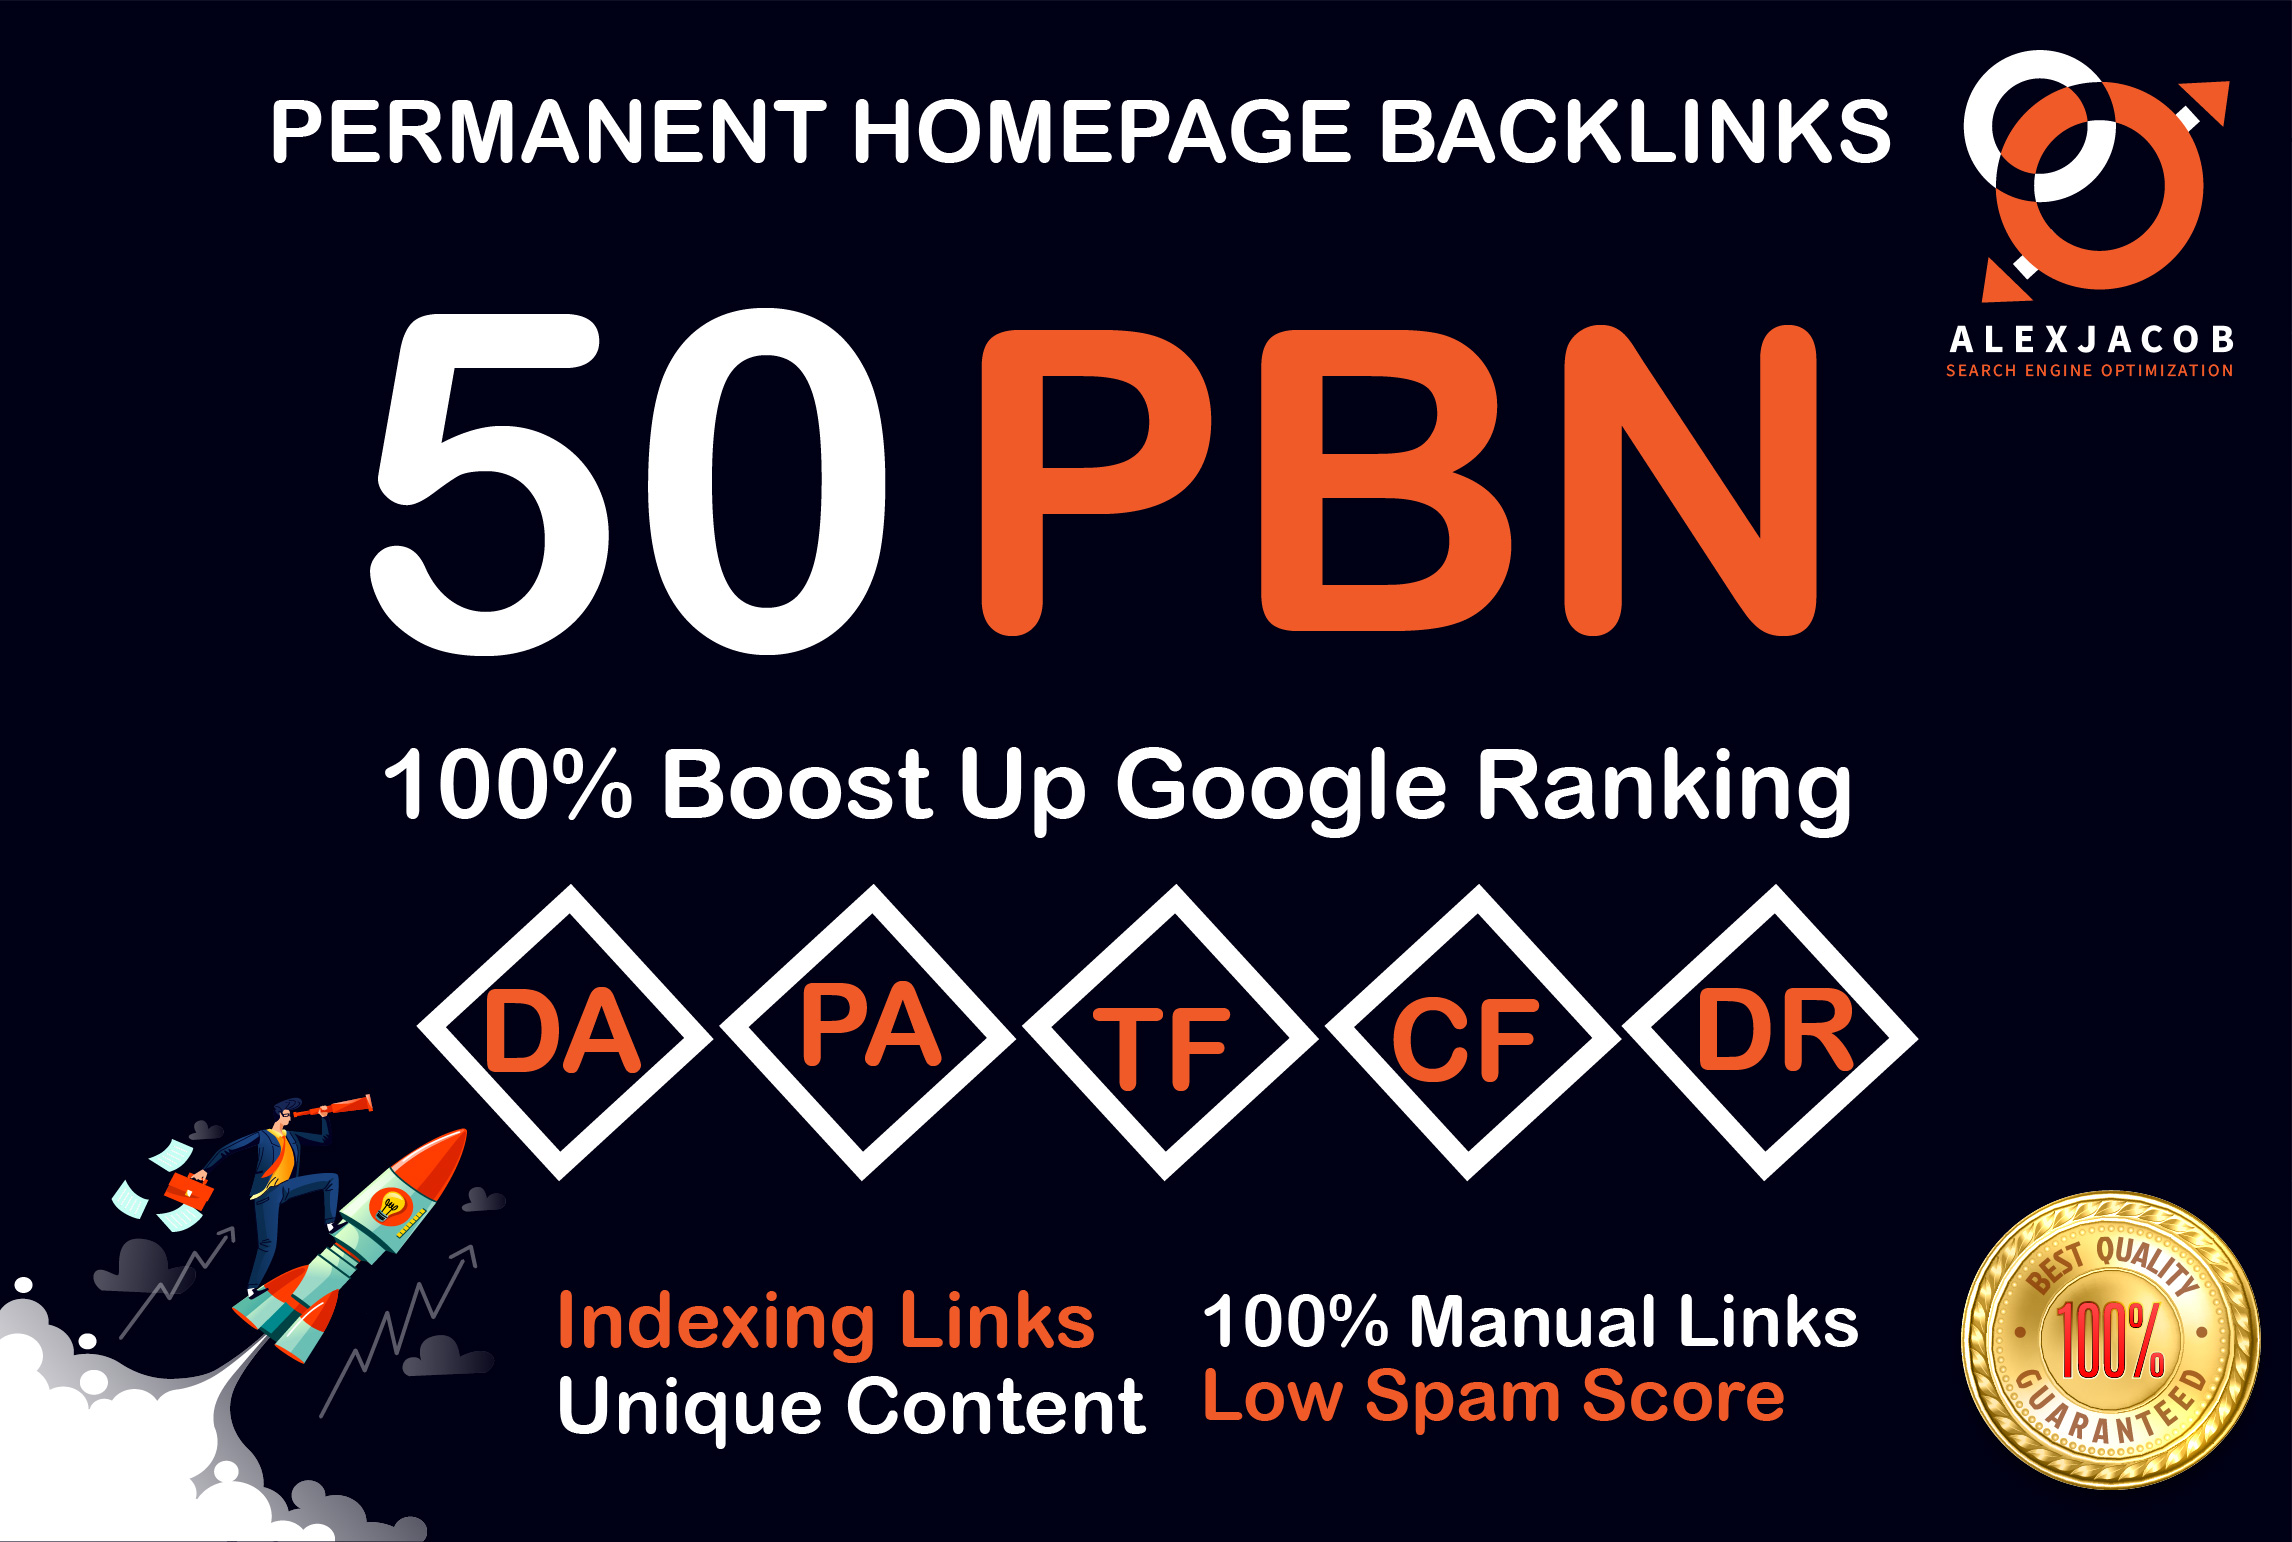 Create 50 PBN Powerfull SEO Permanent Dofollow Backlinks